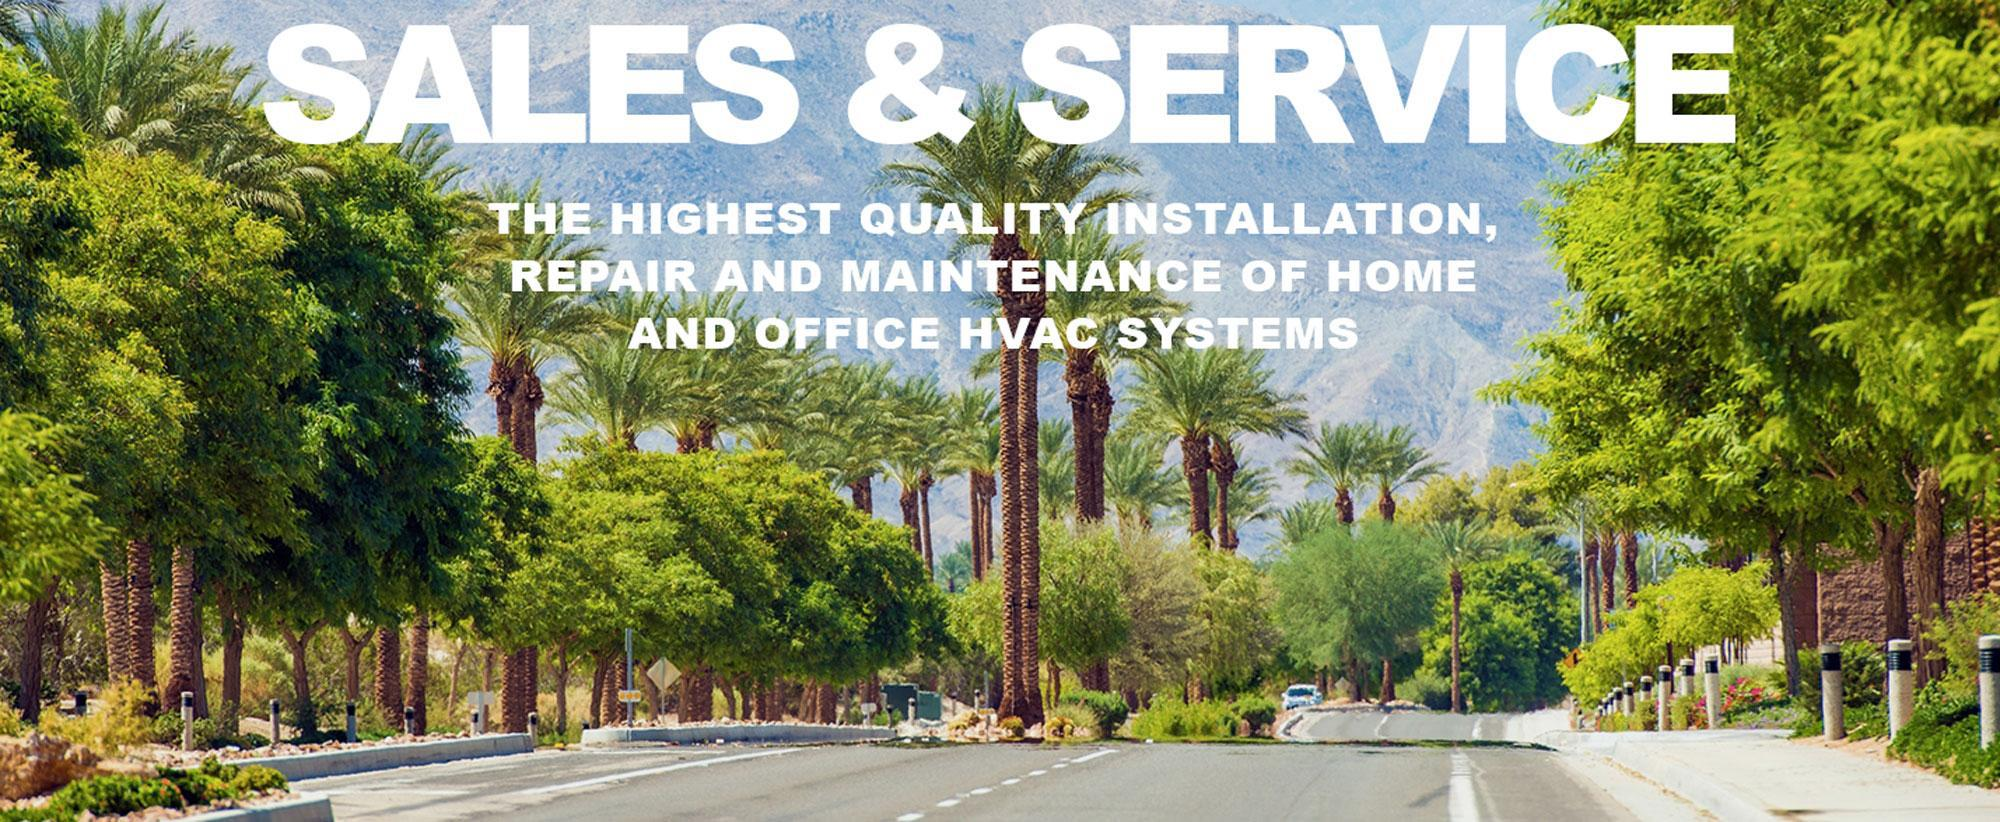 Sales and Service - The Highest Quality Installation, Repair and Maintenance of Home and Office HVAC Systems